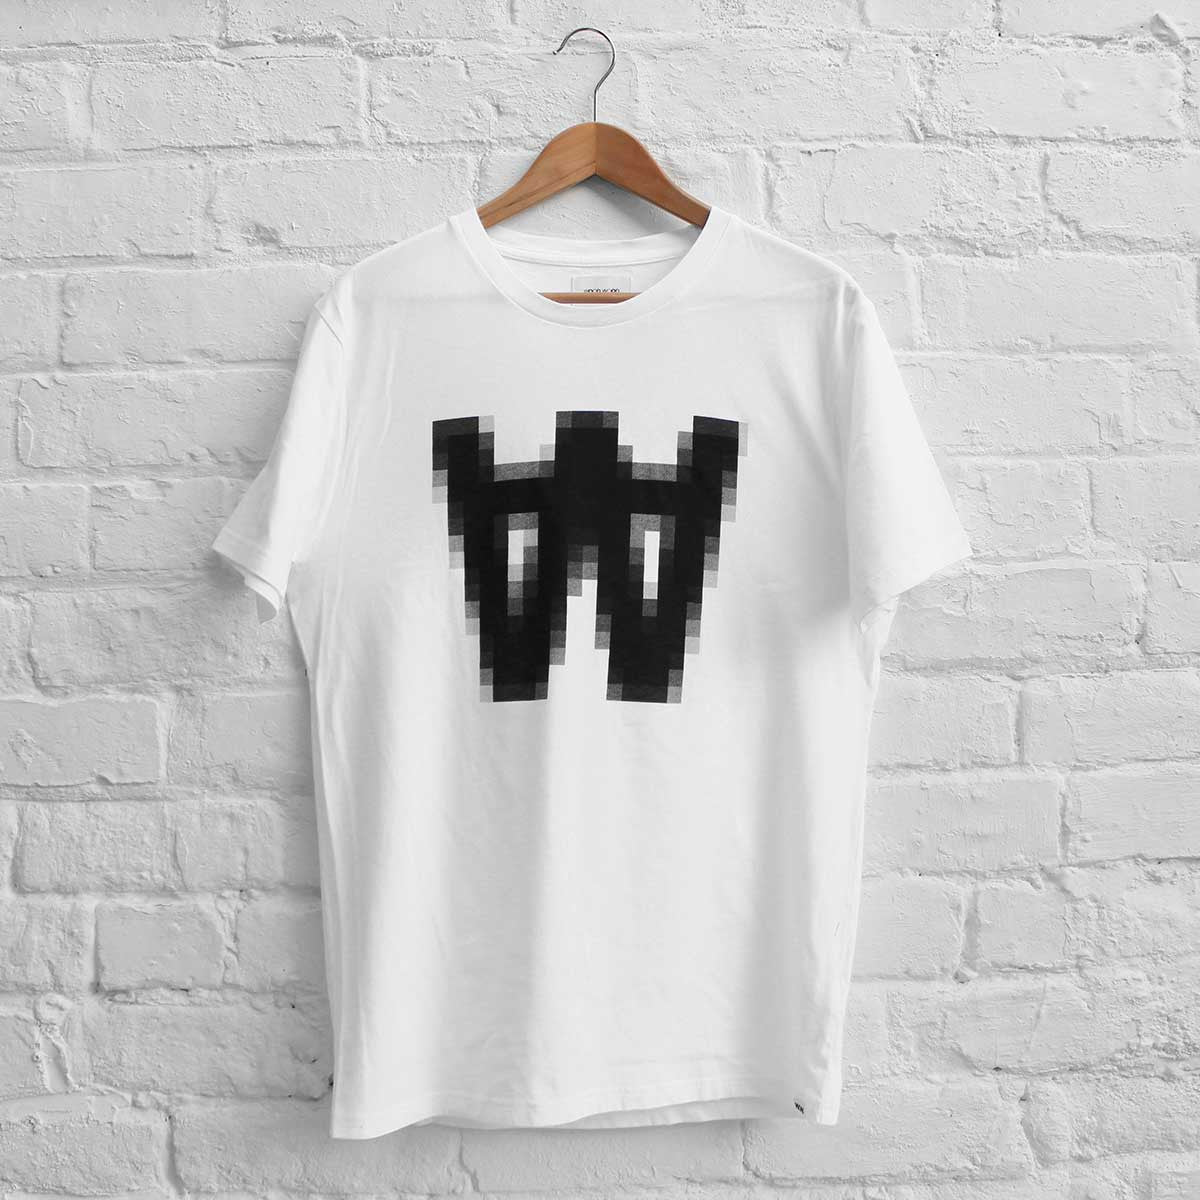 Wood Wood Pix T-Shirt White